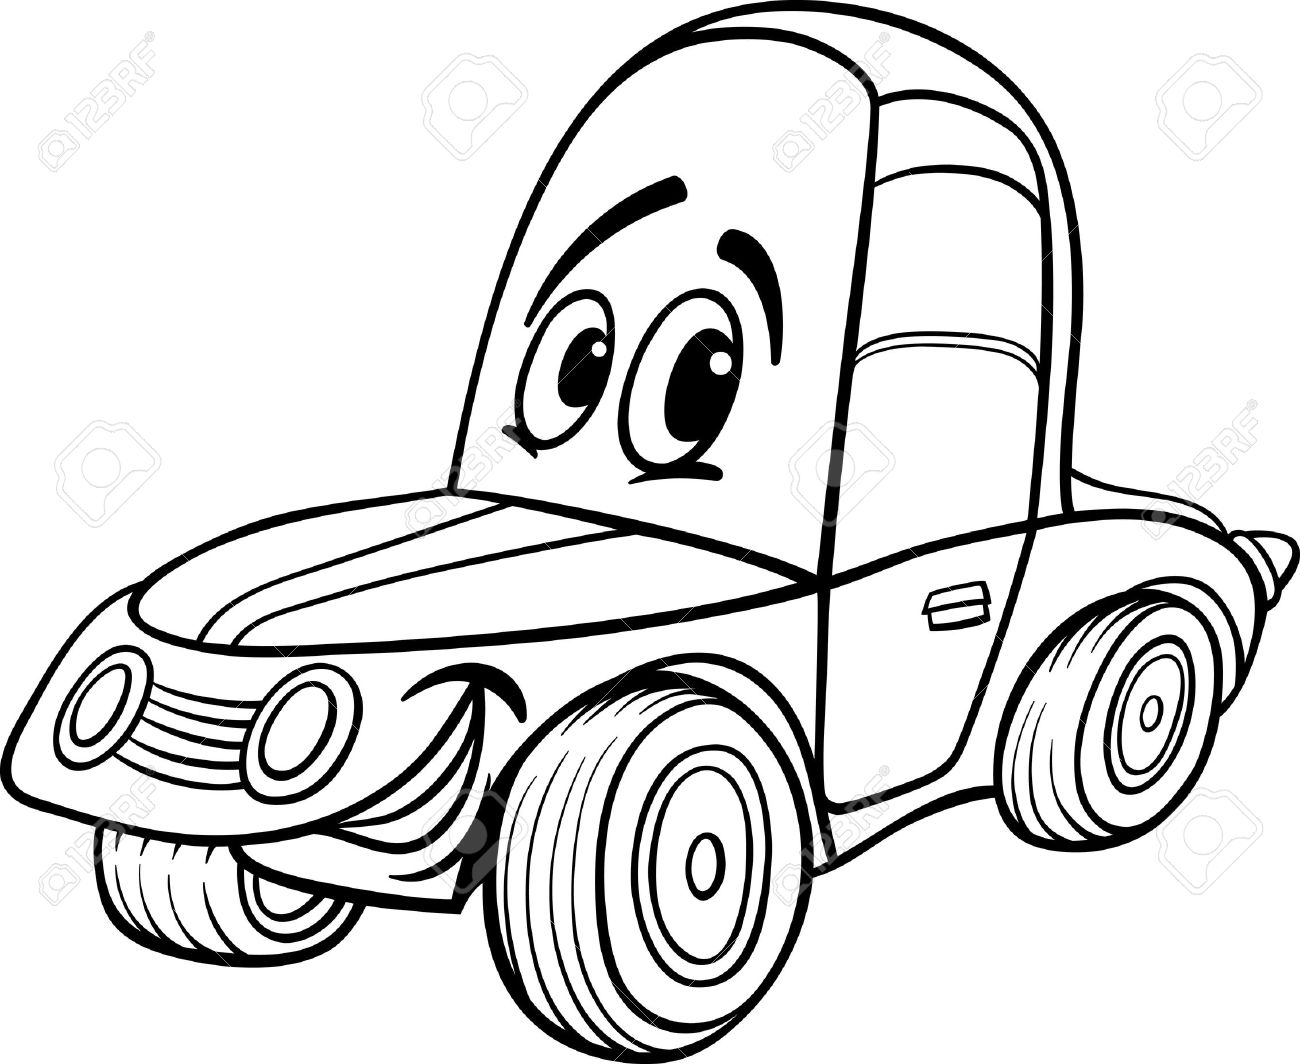 Black And White Cartoon Illustration Of Funny Racing Car Vehicle Comic Mascot Character For Coloring Book